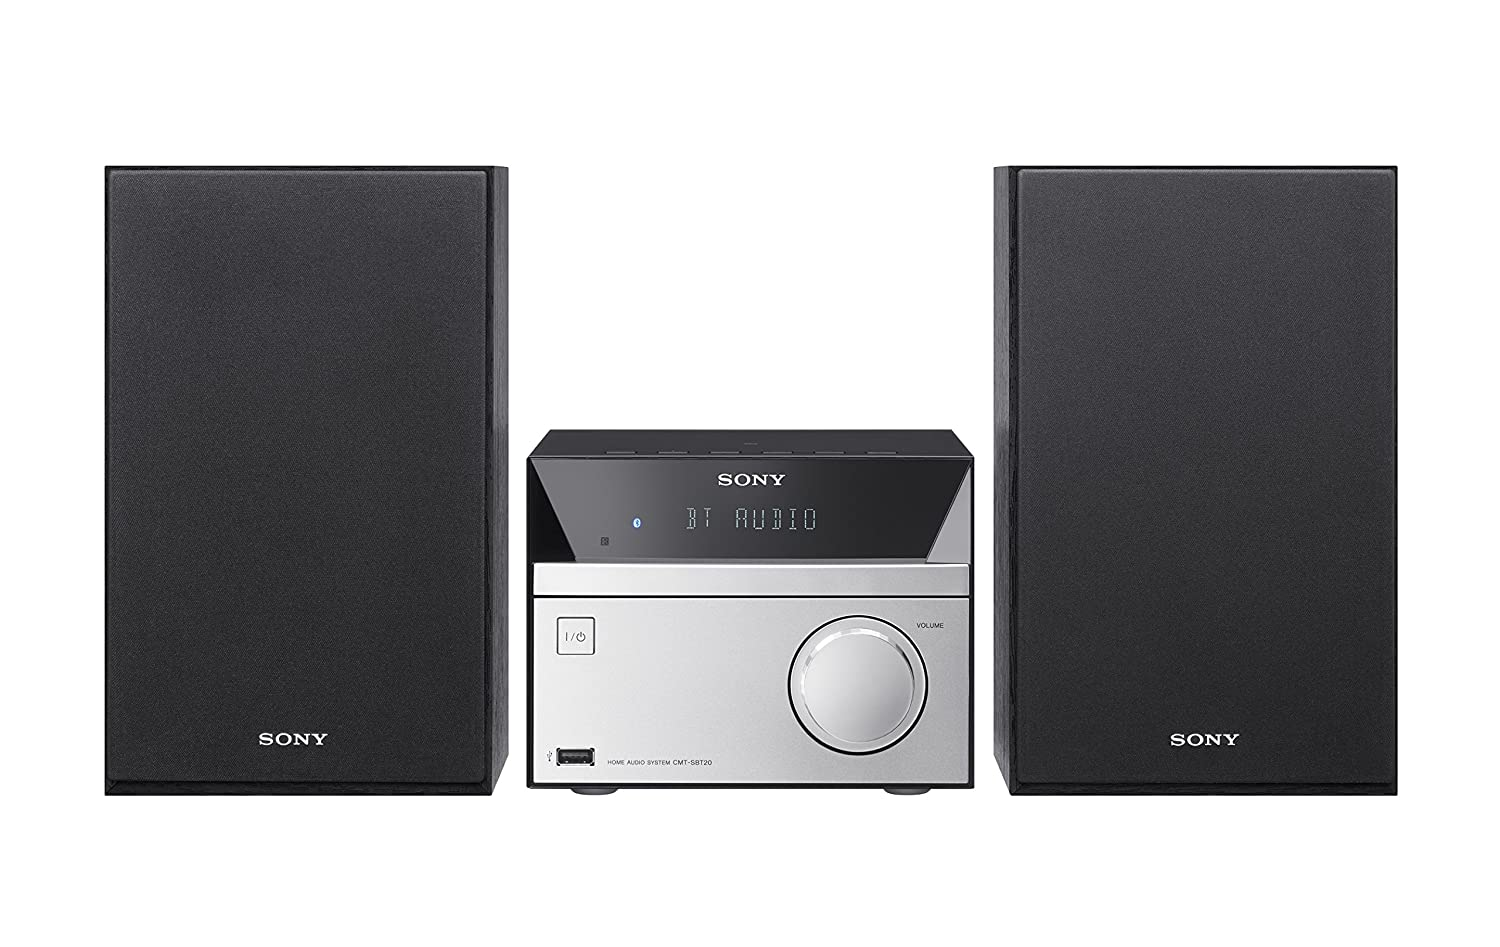 Sony CMT-SBT20 Compact Hi-Fi System with CD Bluetooth NFC – Black/Silver